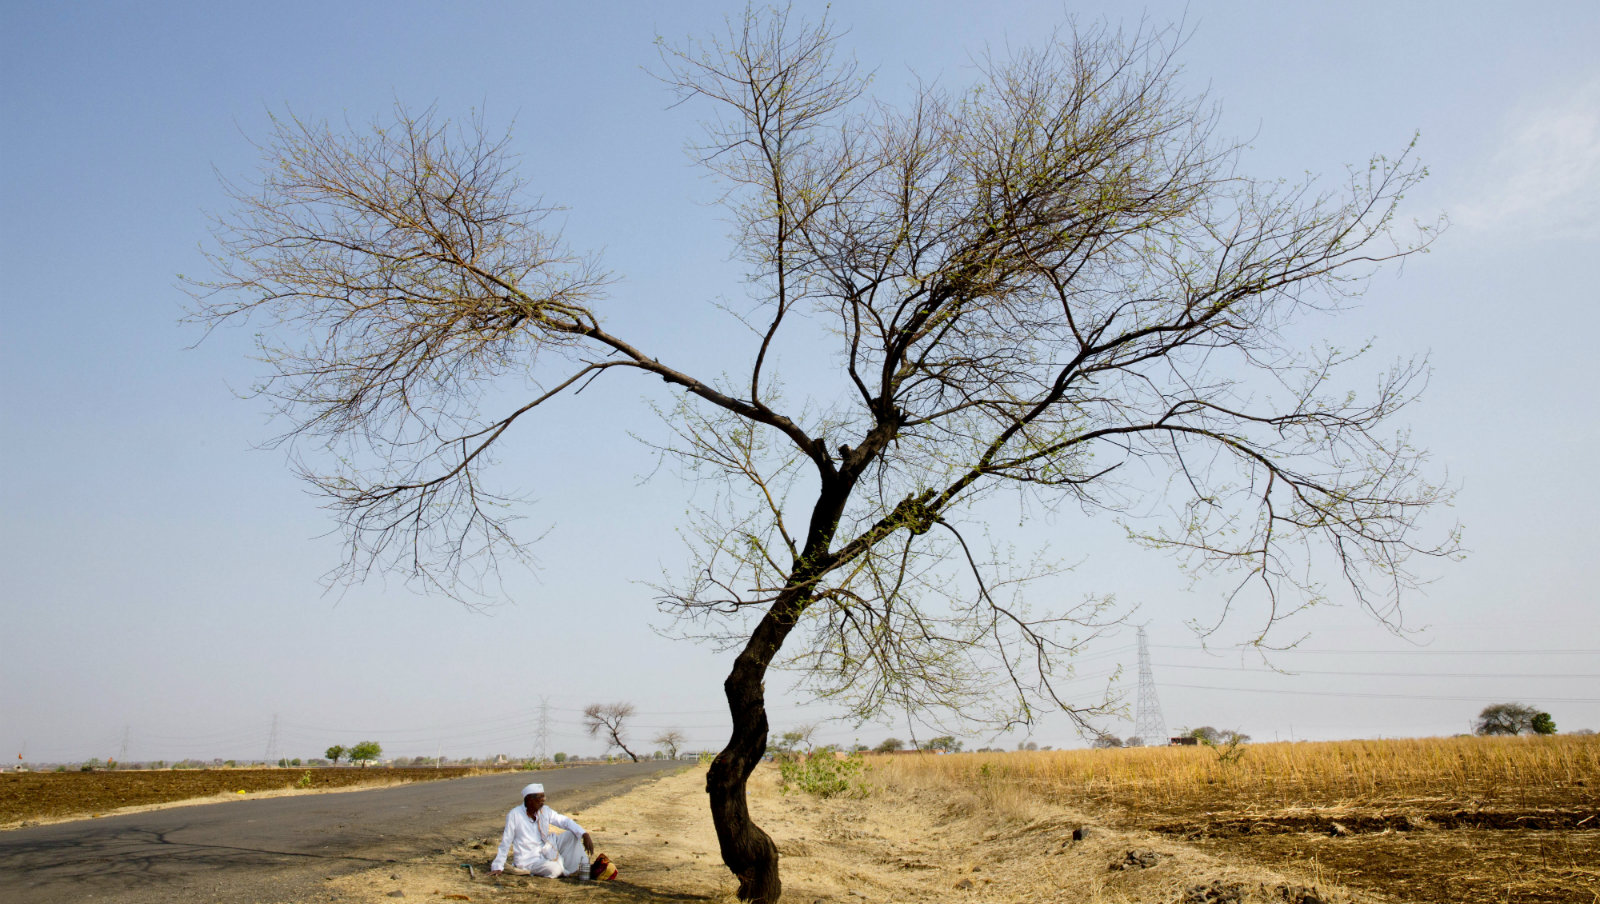 In this May 11, 2016, photo, an Indian farmer sits in the front of his destroyed crop of cotton, alongside a road in one of the drought affected region of Marathwada, in the Indian state of Maharashtra. Failed monsoons play havoc with millions of farmers in central India leading to crippling poverty and soaring suicides. Some 400 farmers have killed themselves so far this year in the parched Marathwada region, which is home to about 19 million people.